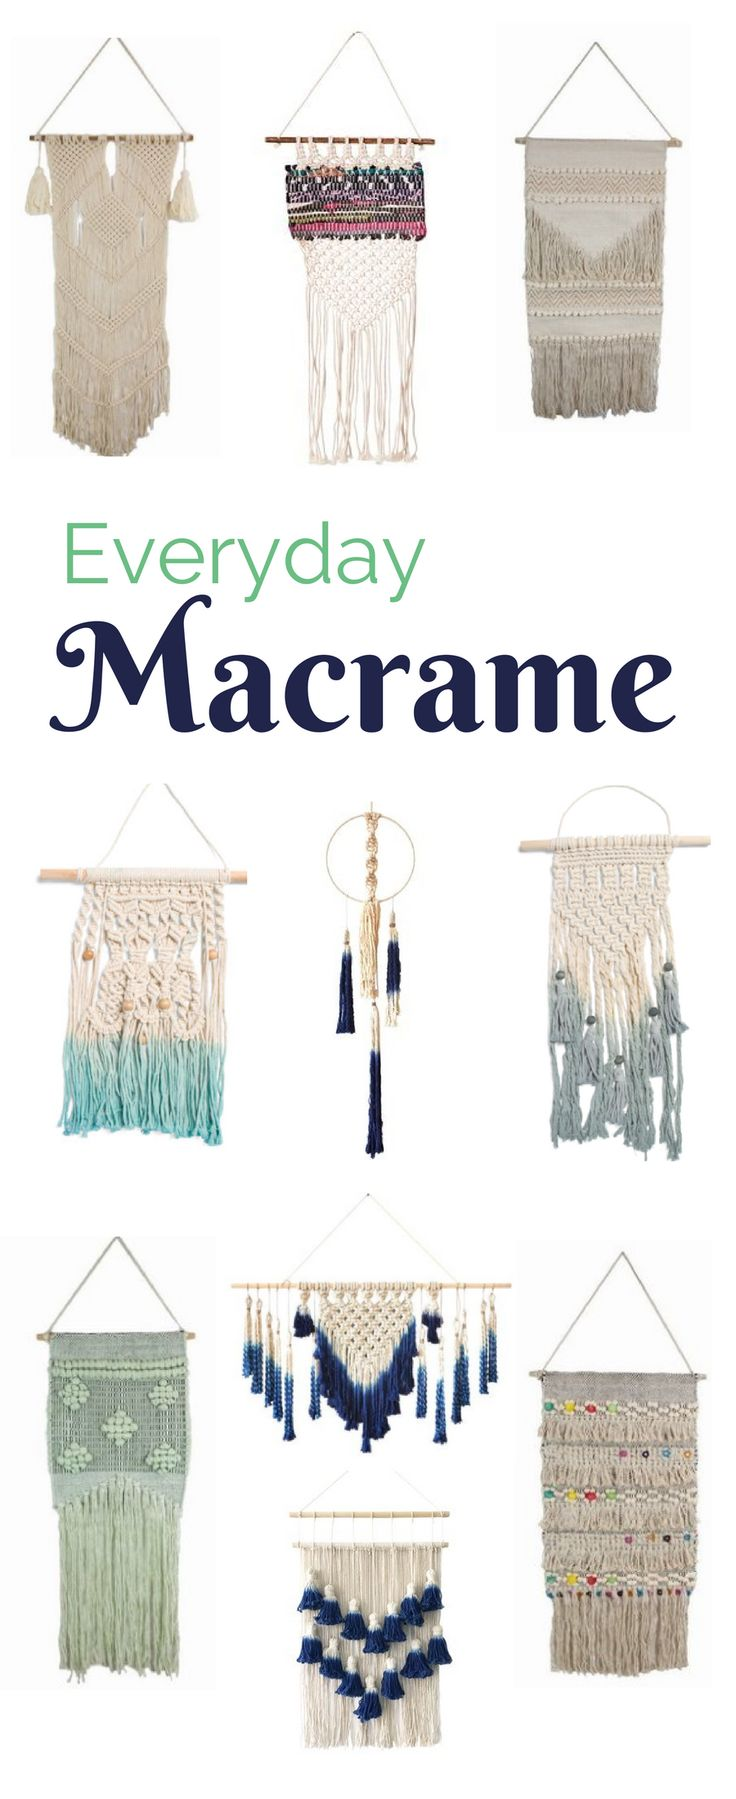 Check out everyday Macrame. Perfect for all home or office decor.